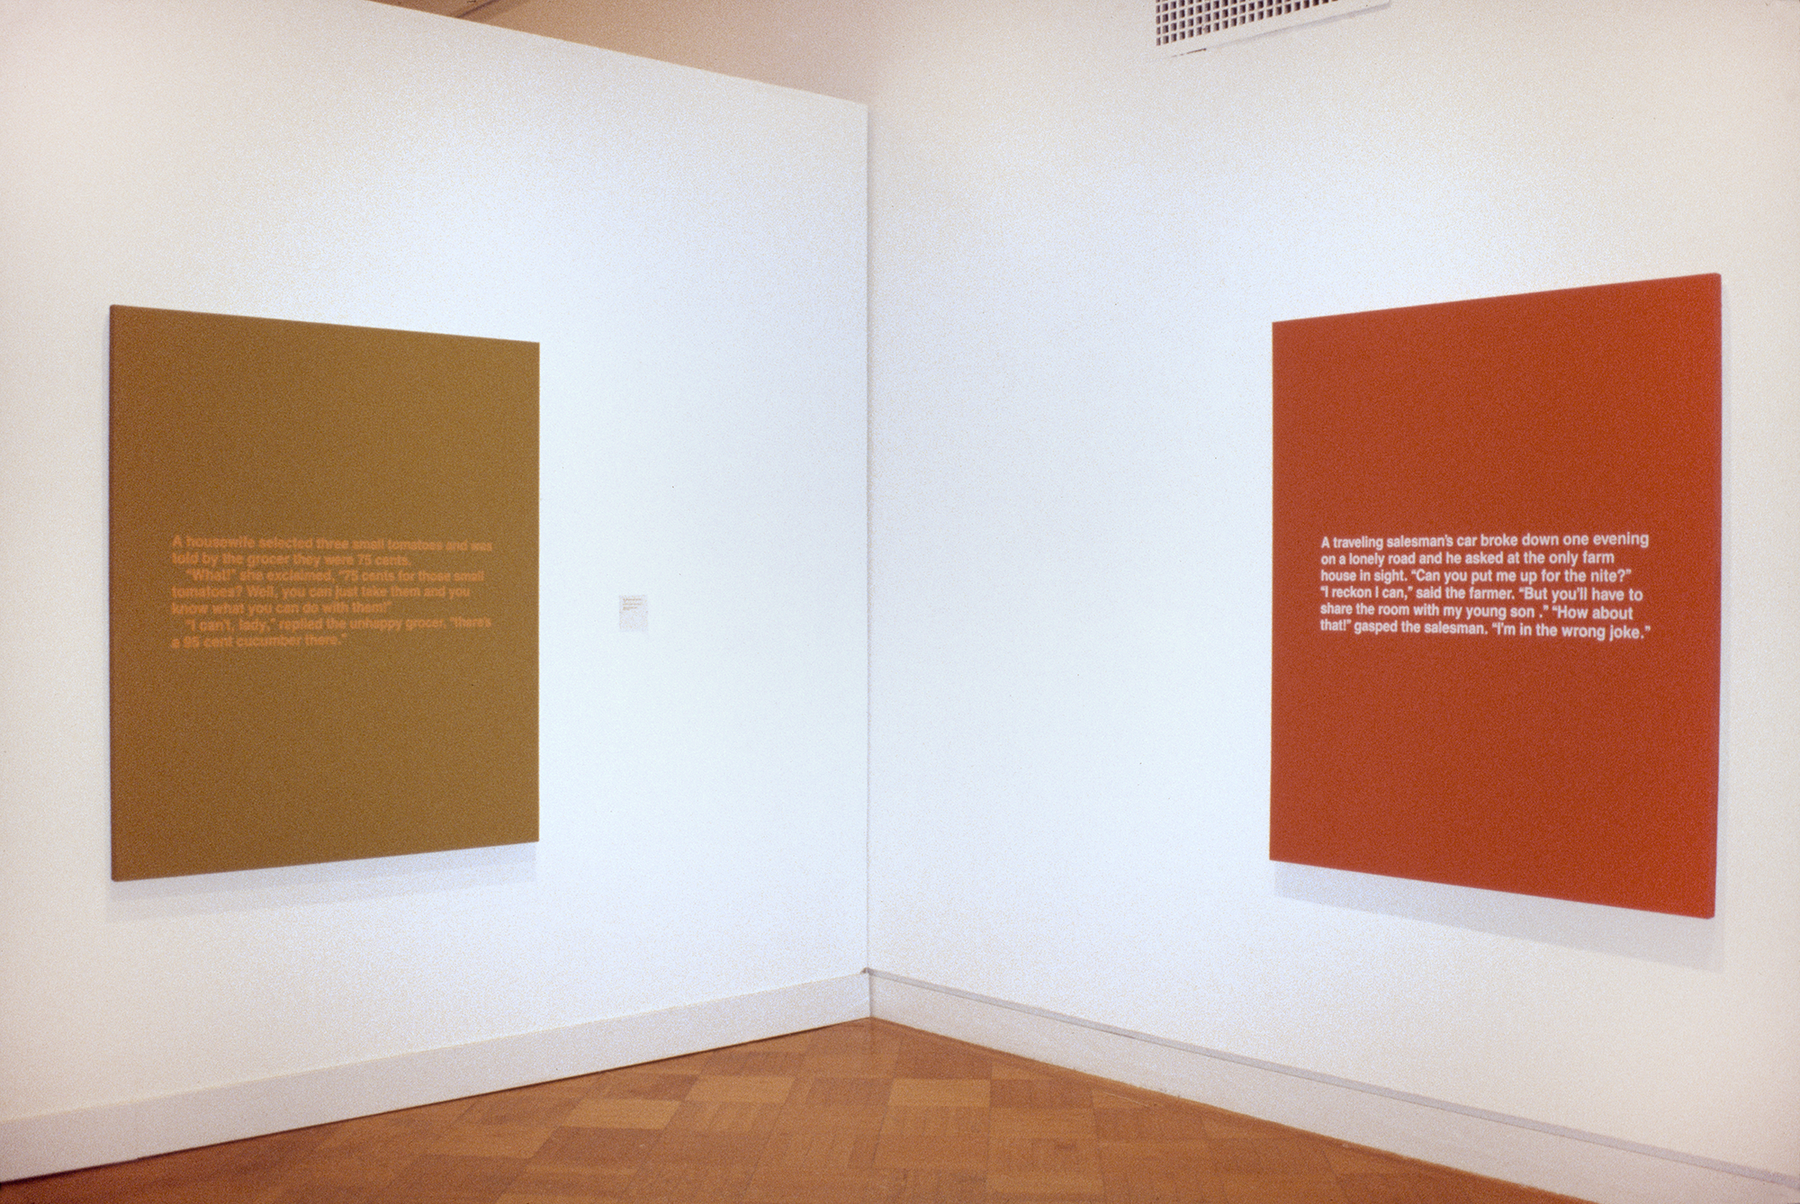 A mustard canvas and an orange canvas hanging in a gallery, each featuring blocks of white text